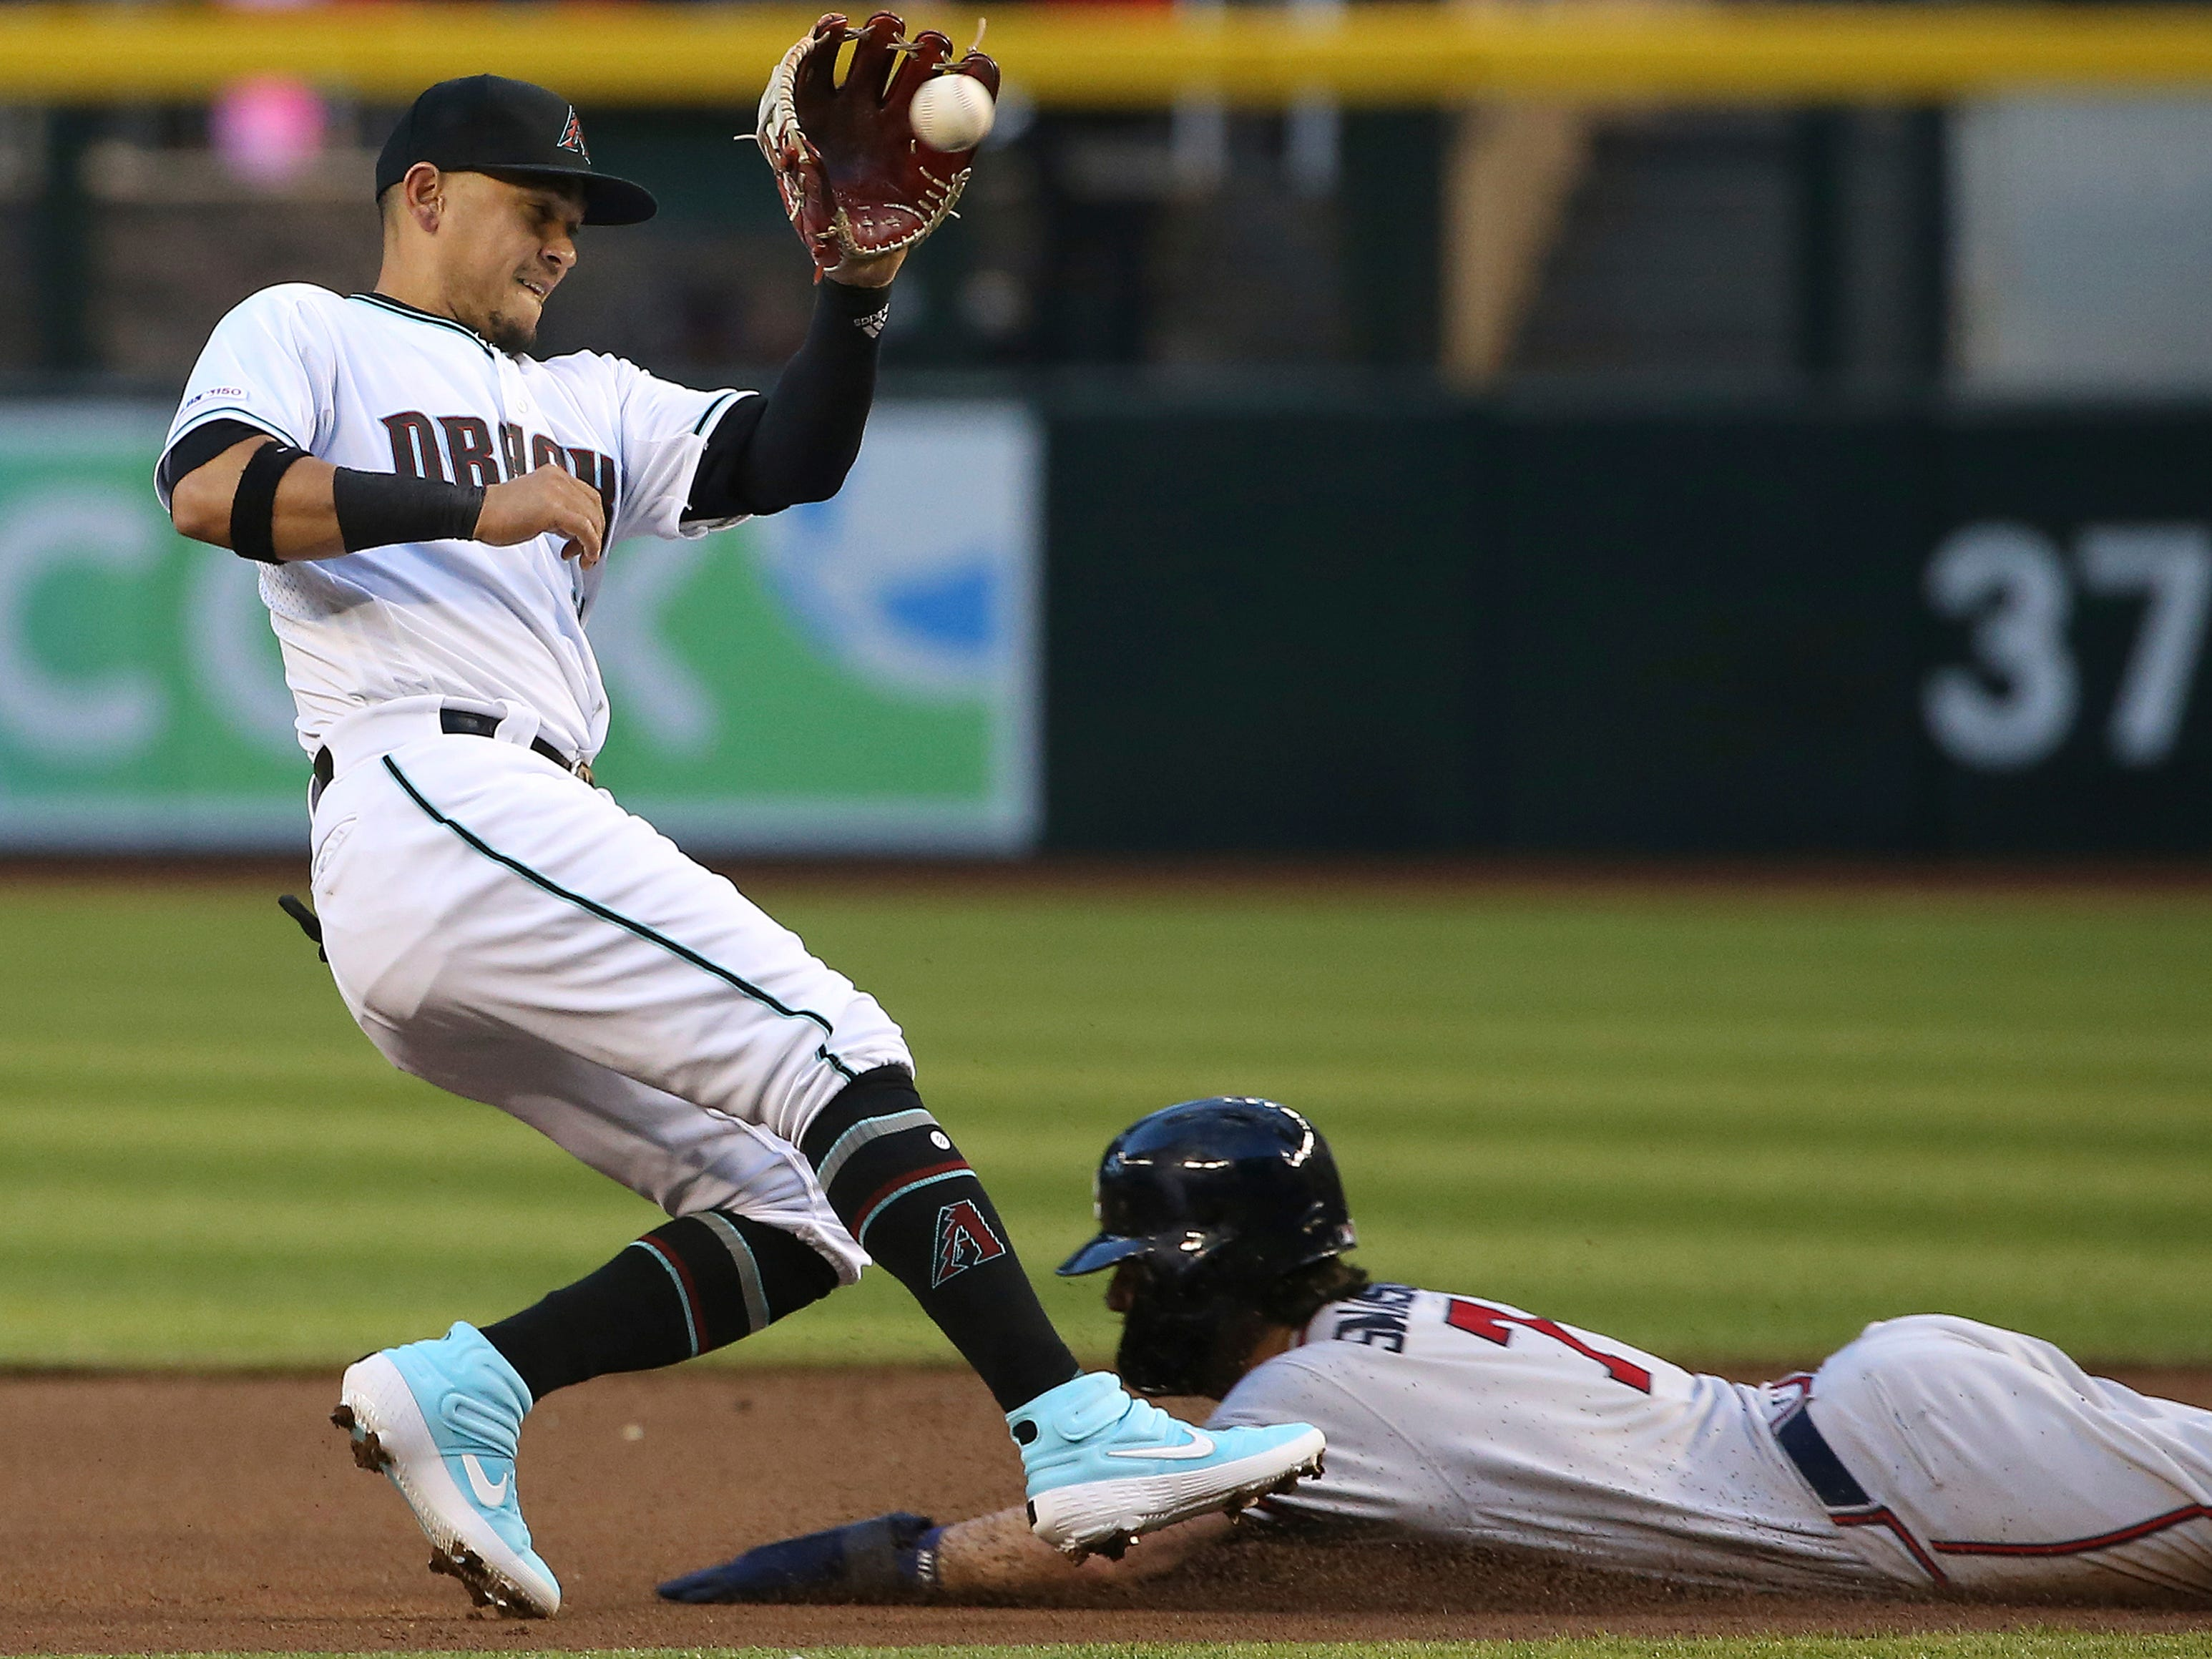 Arizona Diamondbacks third baseman Ildemaro Vargas, left, makes a catch on the ball before tagging out Atlanta Braves shortstop Dansby Swanson (7) as Swanson tried to steal second base during the first inning of a baseball game Friday, May 10, 2019, in Phoenix. (AP Photo/Ross D. Franklin)